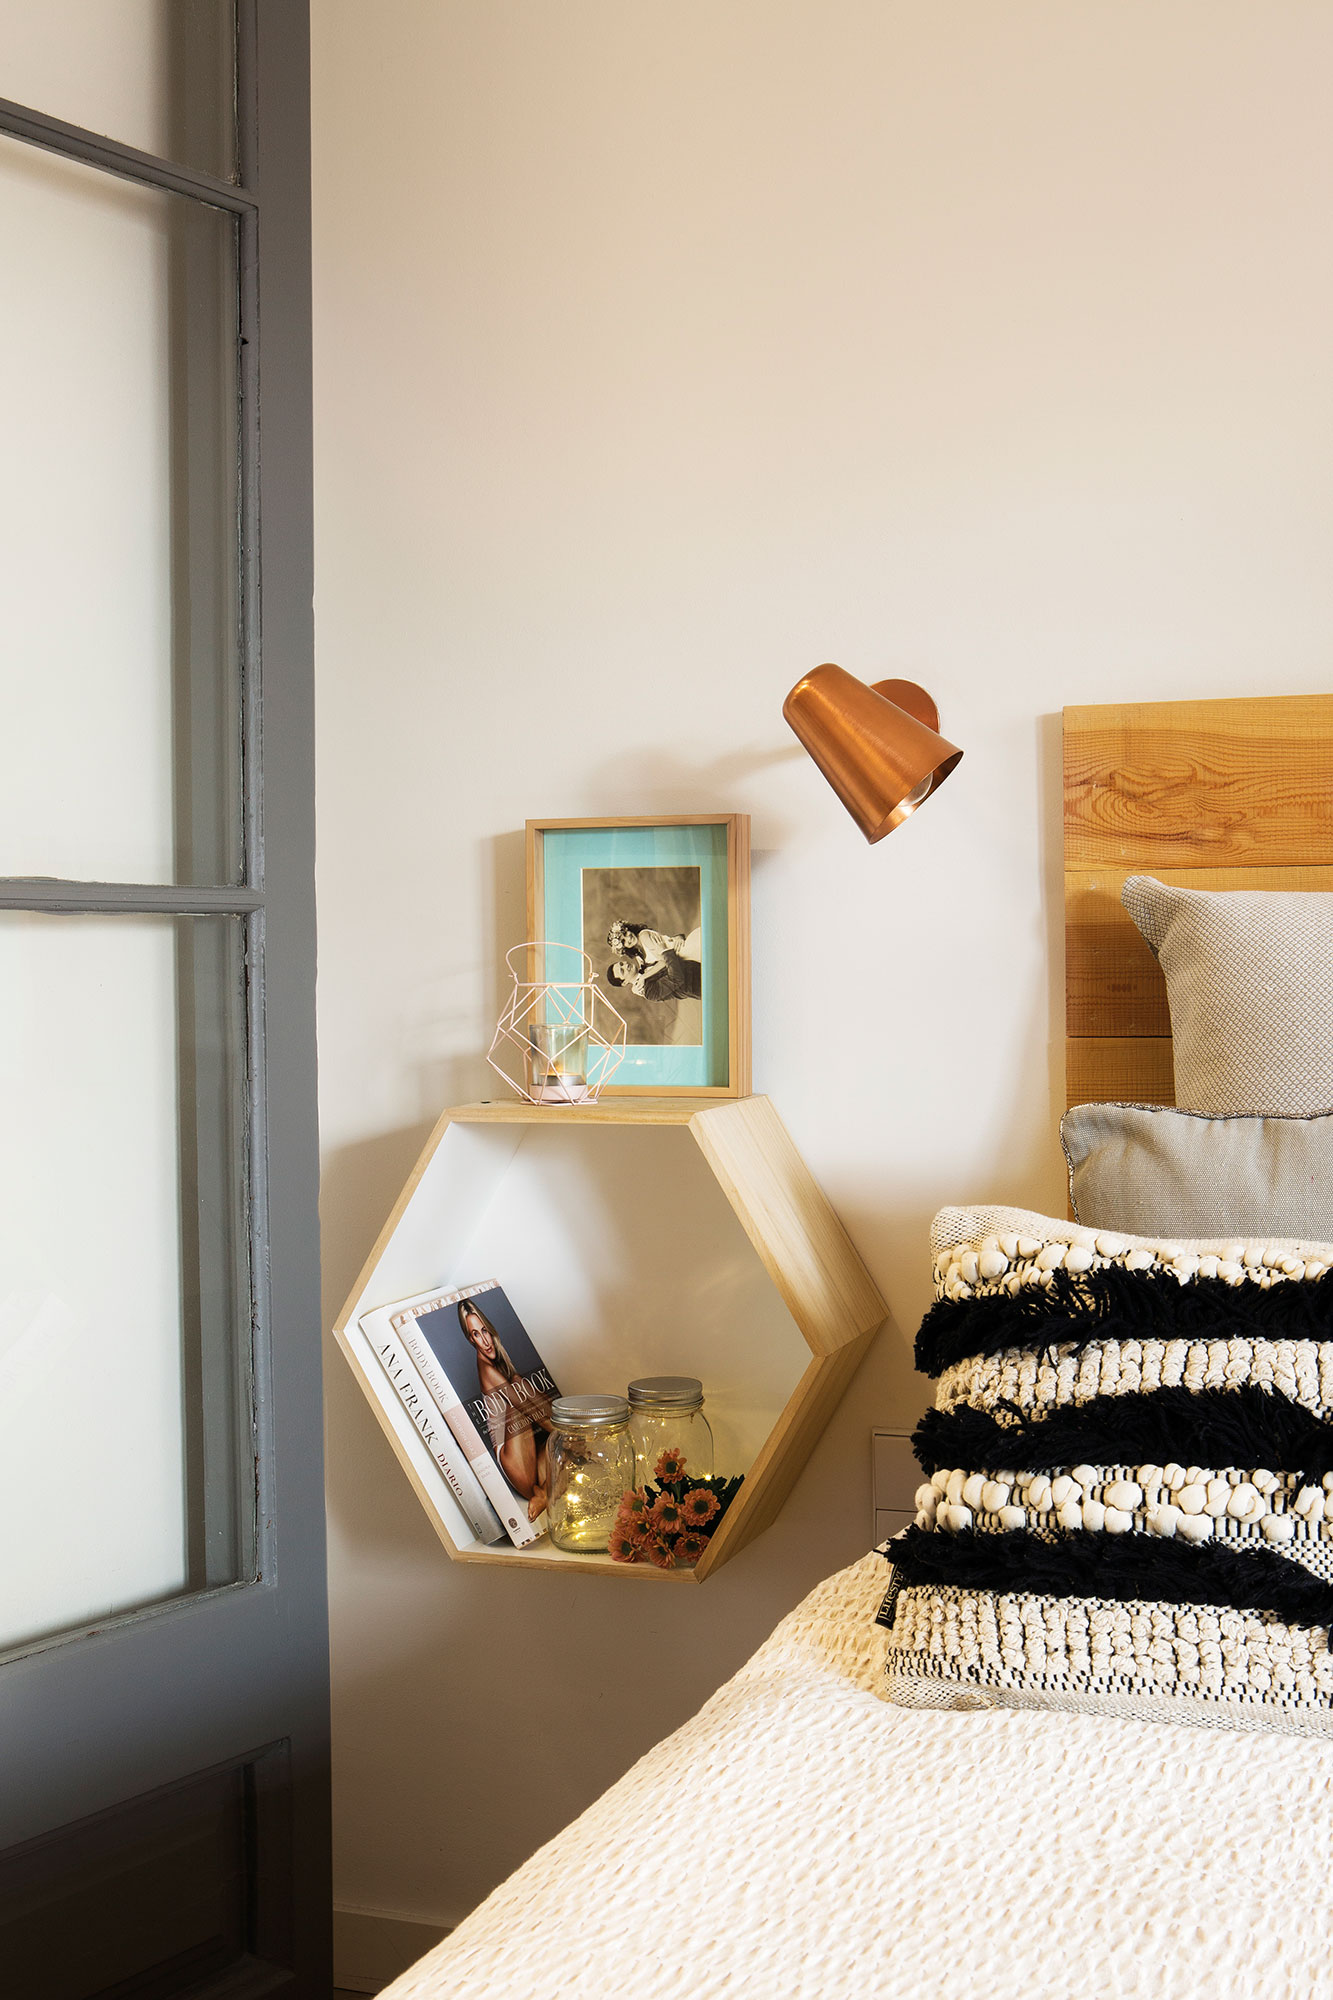 Compartir piso 10 ideas low cost para decorar tu dormitorio - Mesilla de noche original ...